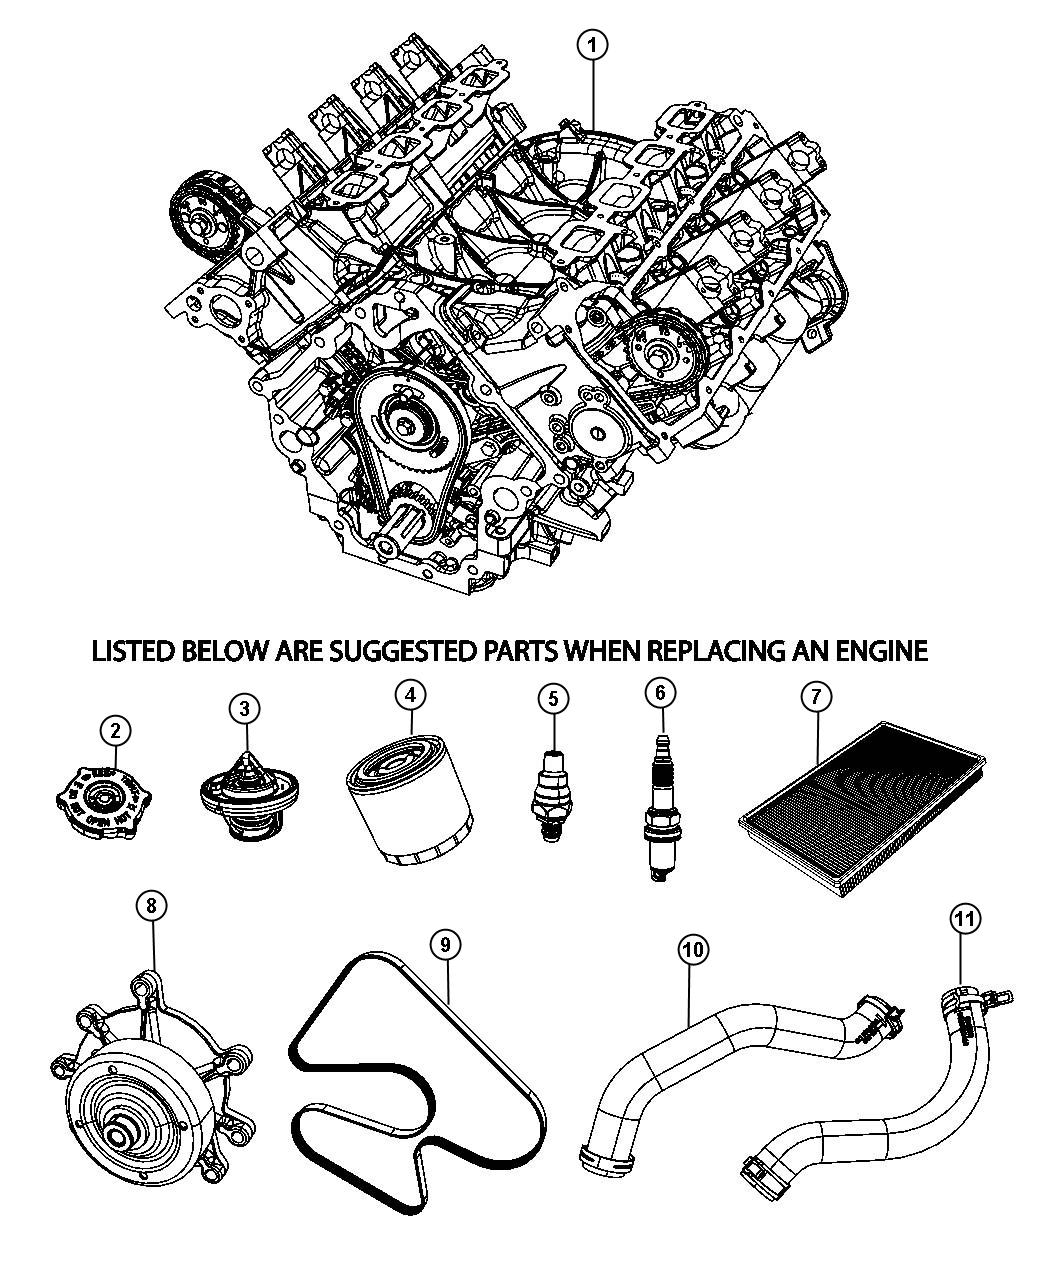 Dodge Nitro Engine. Remanufactured. Long block. Suggested